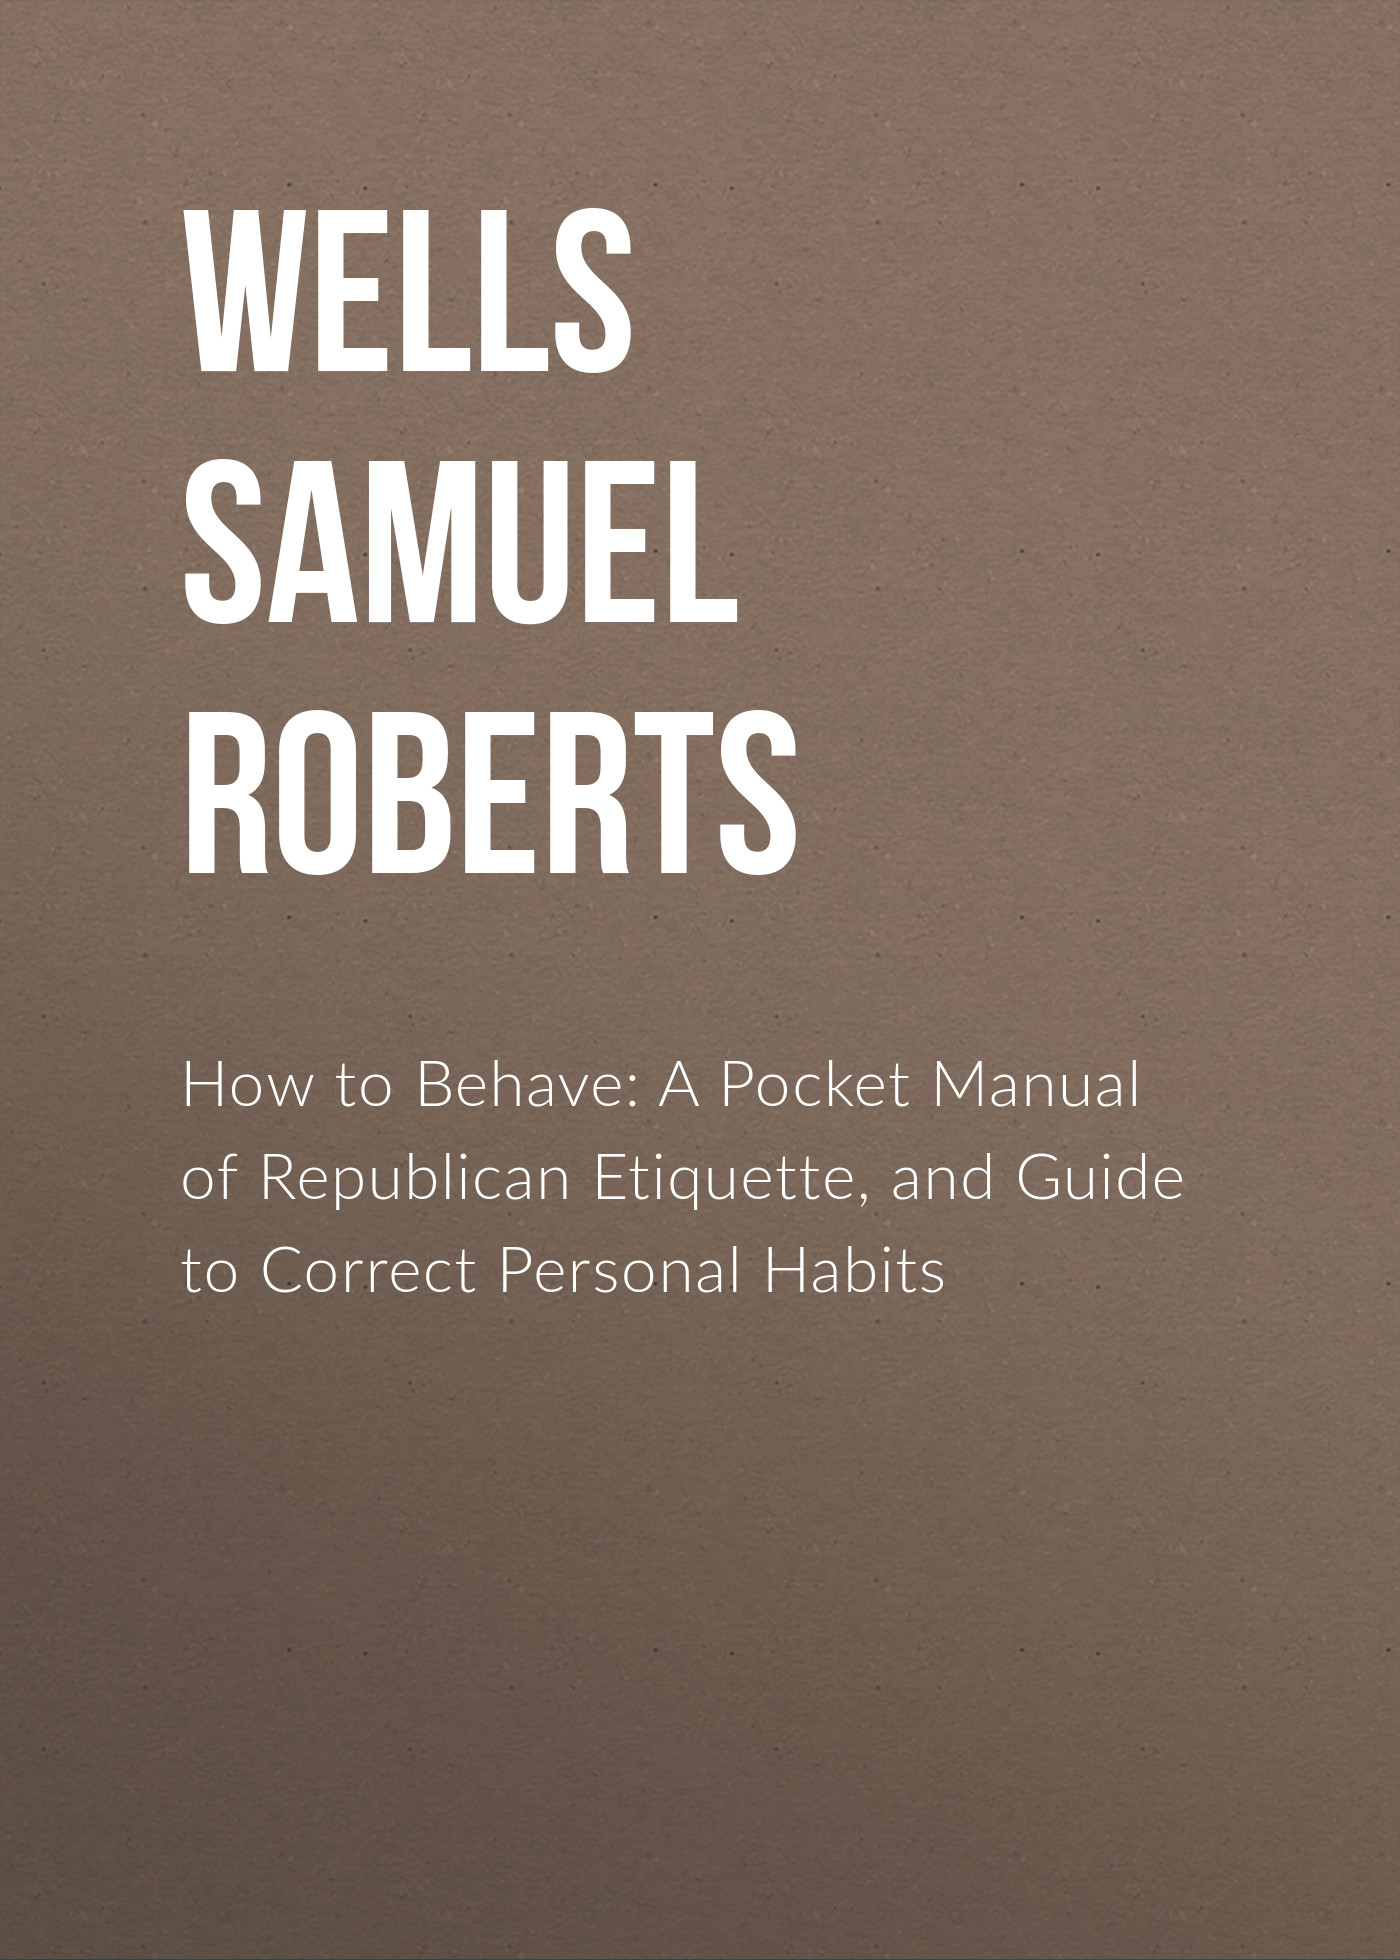 Wells Samuel Roberts How to Behave: A Pocket Manual of Republican Etiquette, and Guide to Correct Personal Habits 1pcs serial ata sata 4 pin ide to 2 of 15 hdd power adapter cable hot worldwide